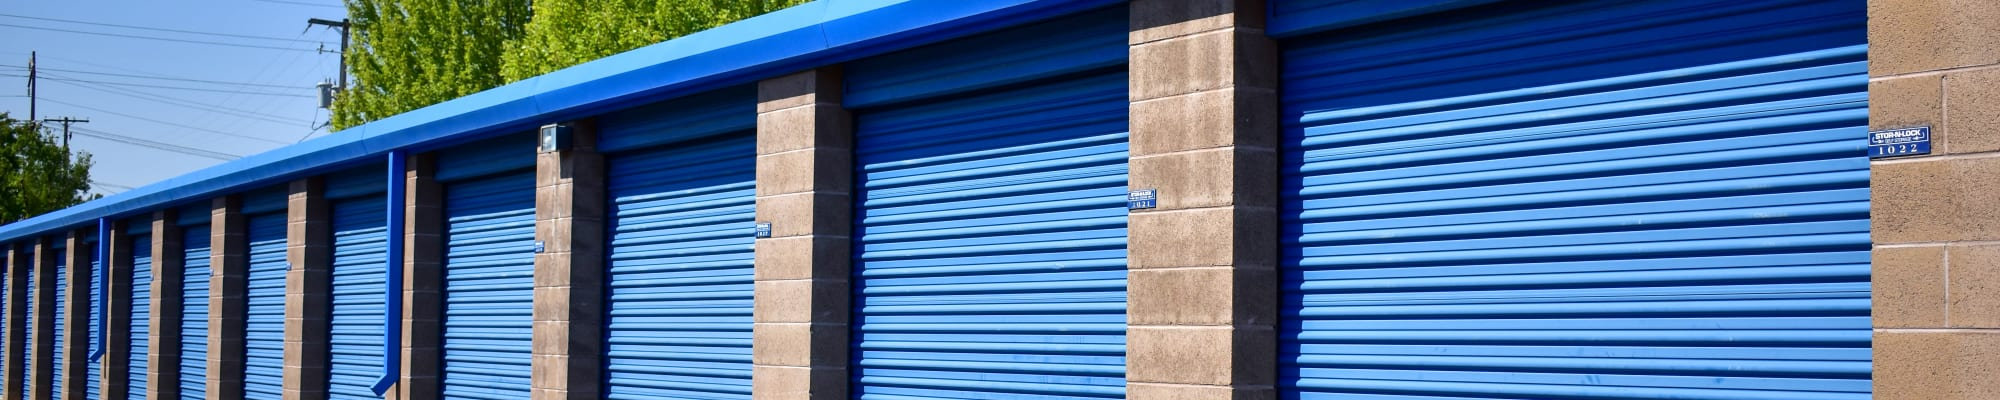 Contact us at STOR-N-LOCK Self Storage in Cottonwood Heights, Utah